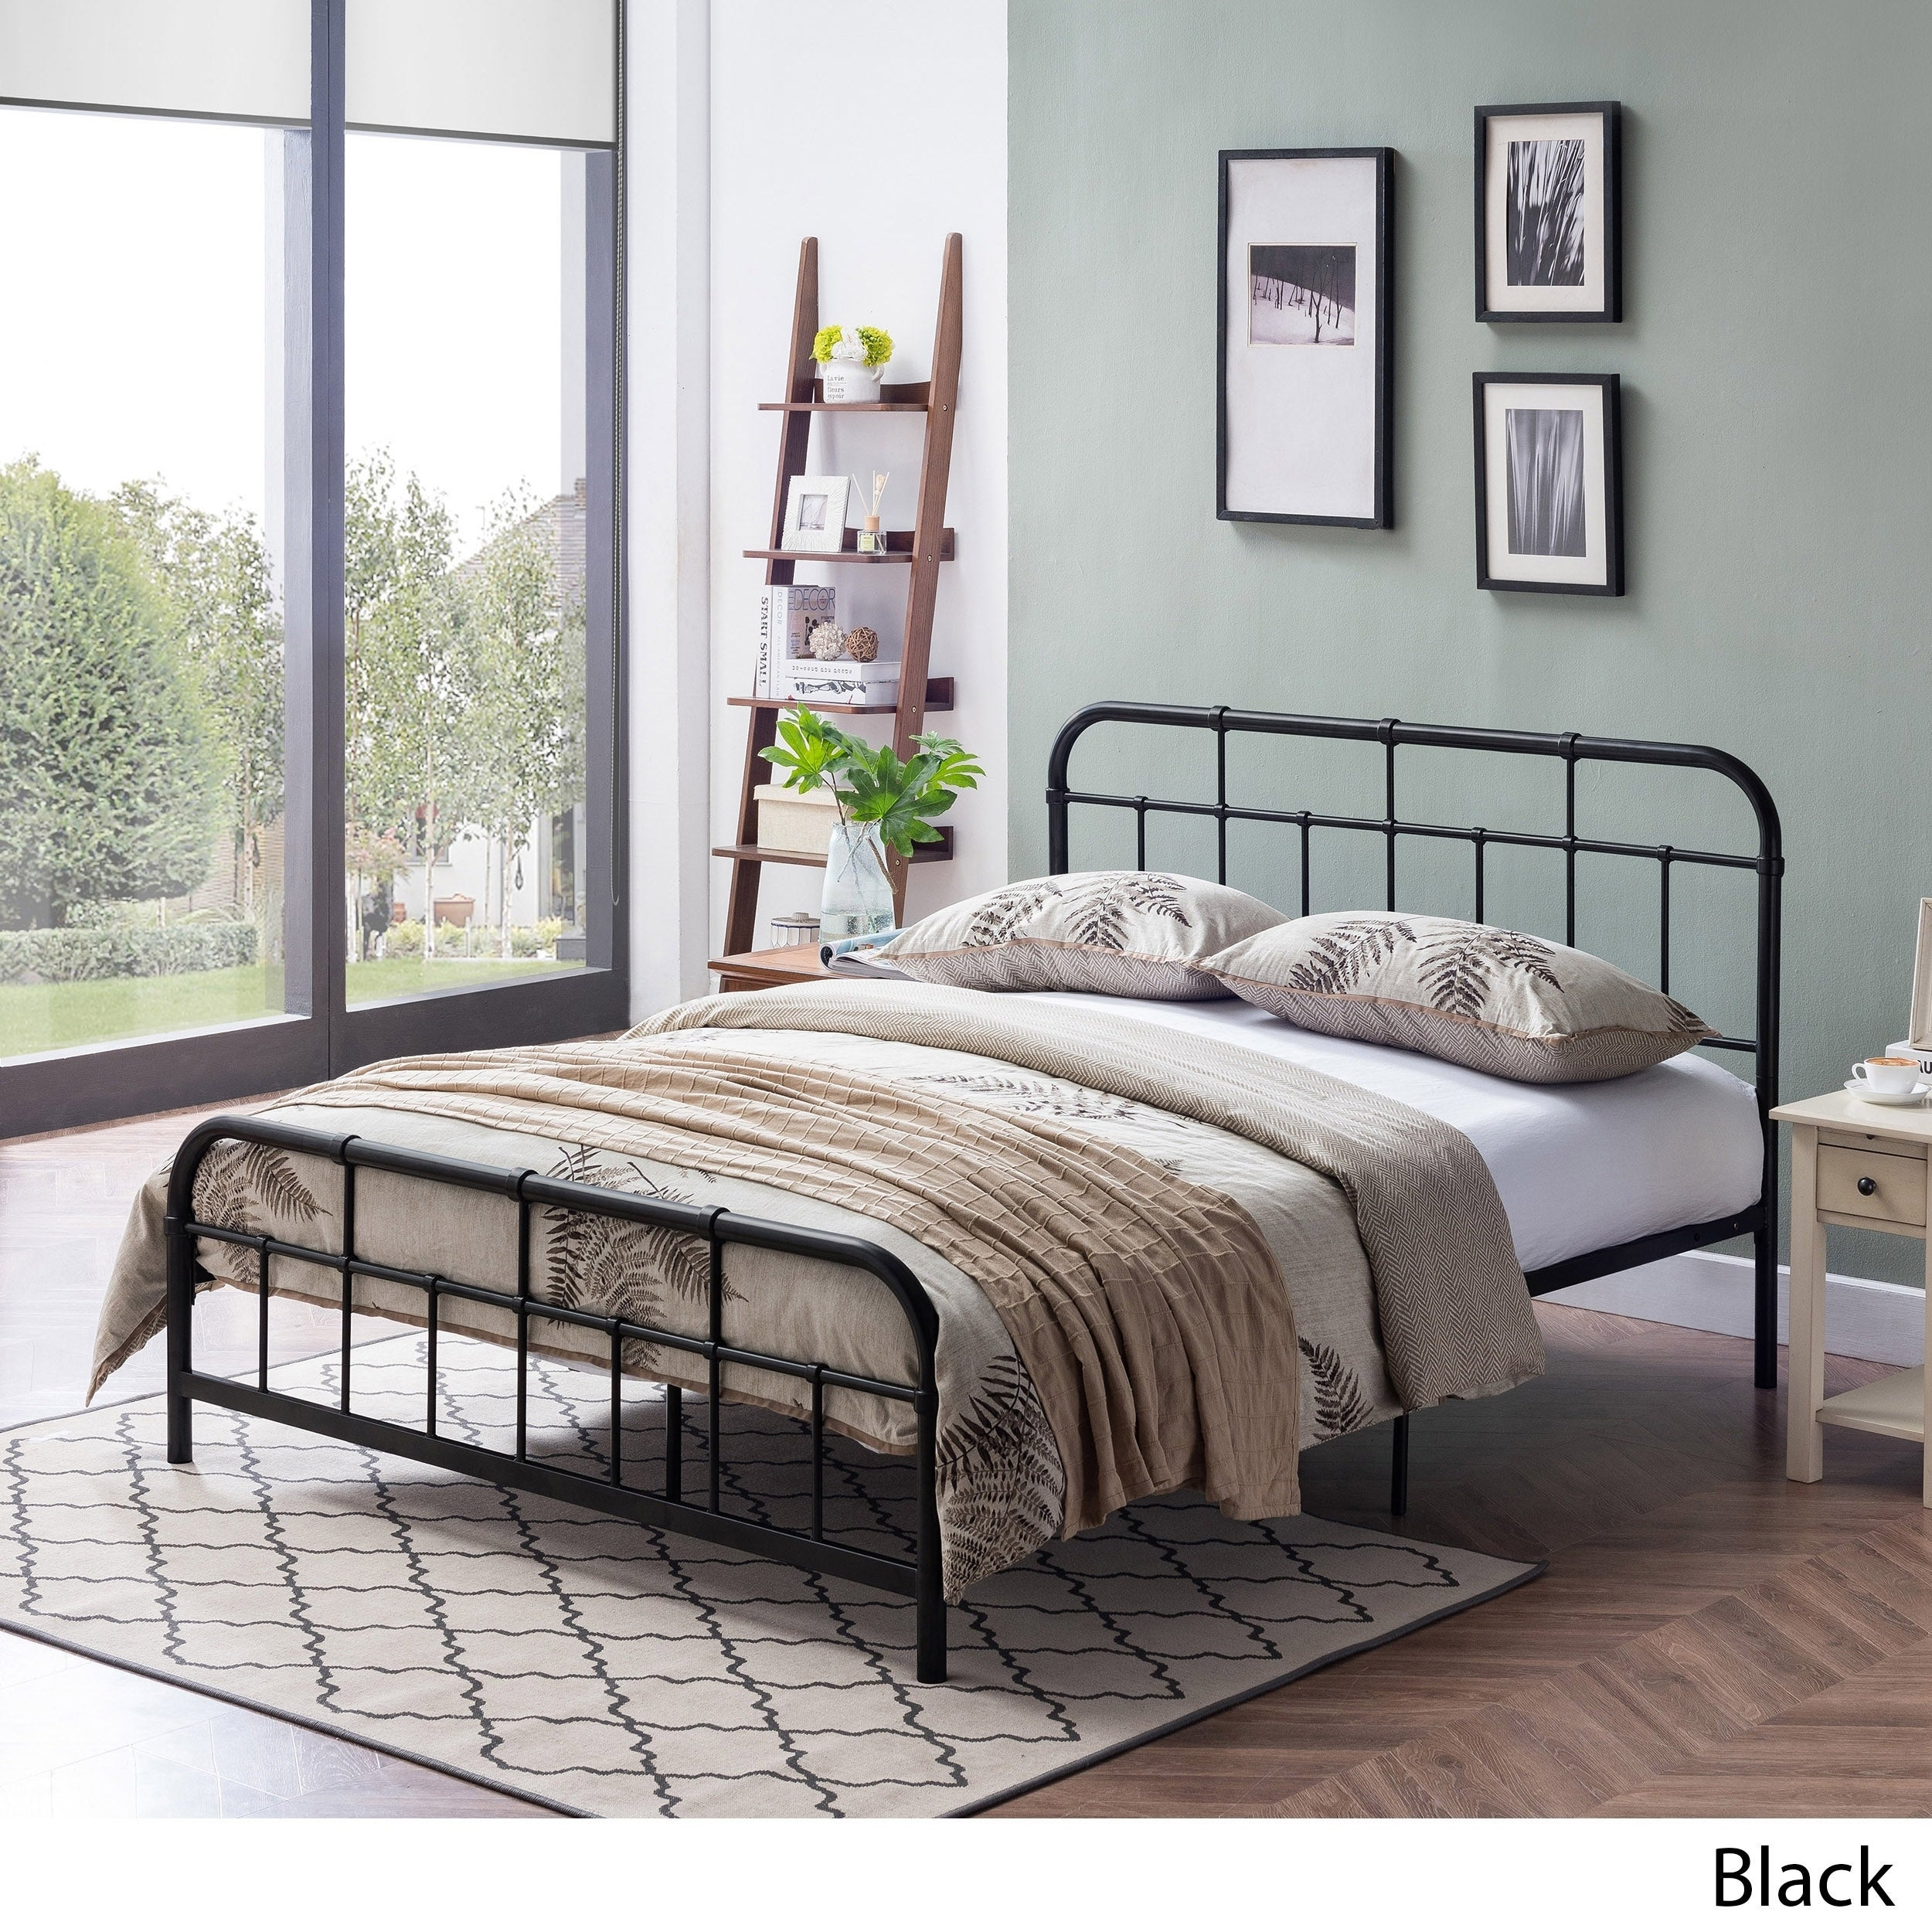 Berthoud Industrial Bed Frame By Christopher Knight Home On Sale Overstock 24115166